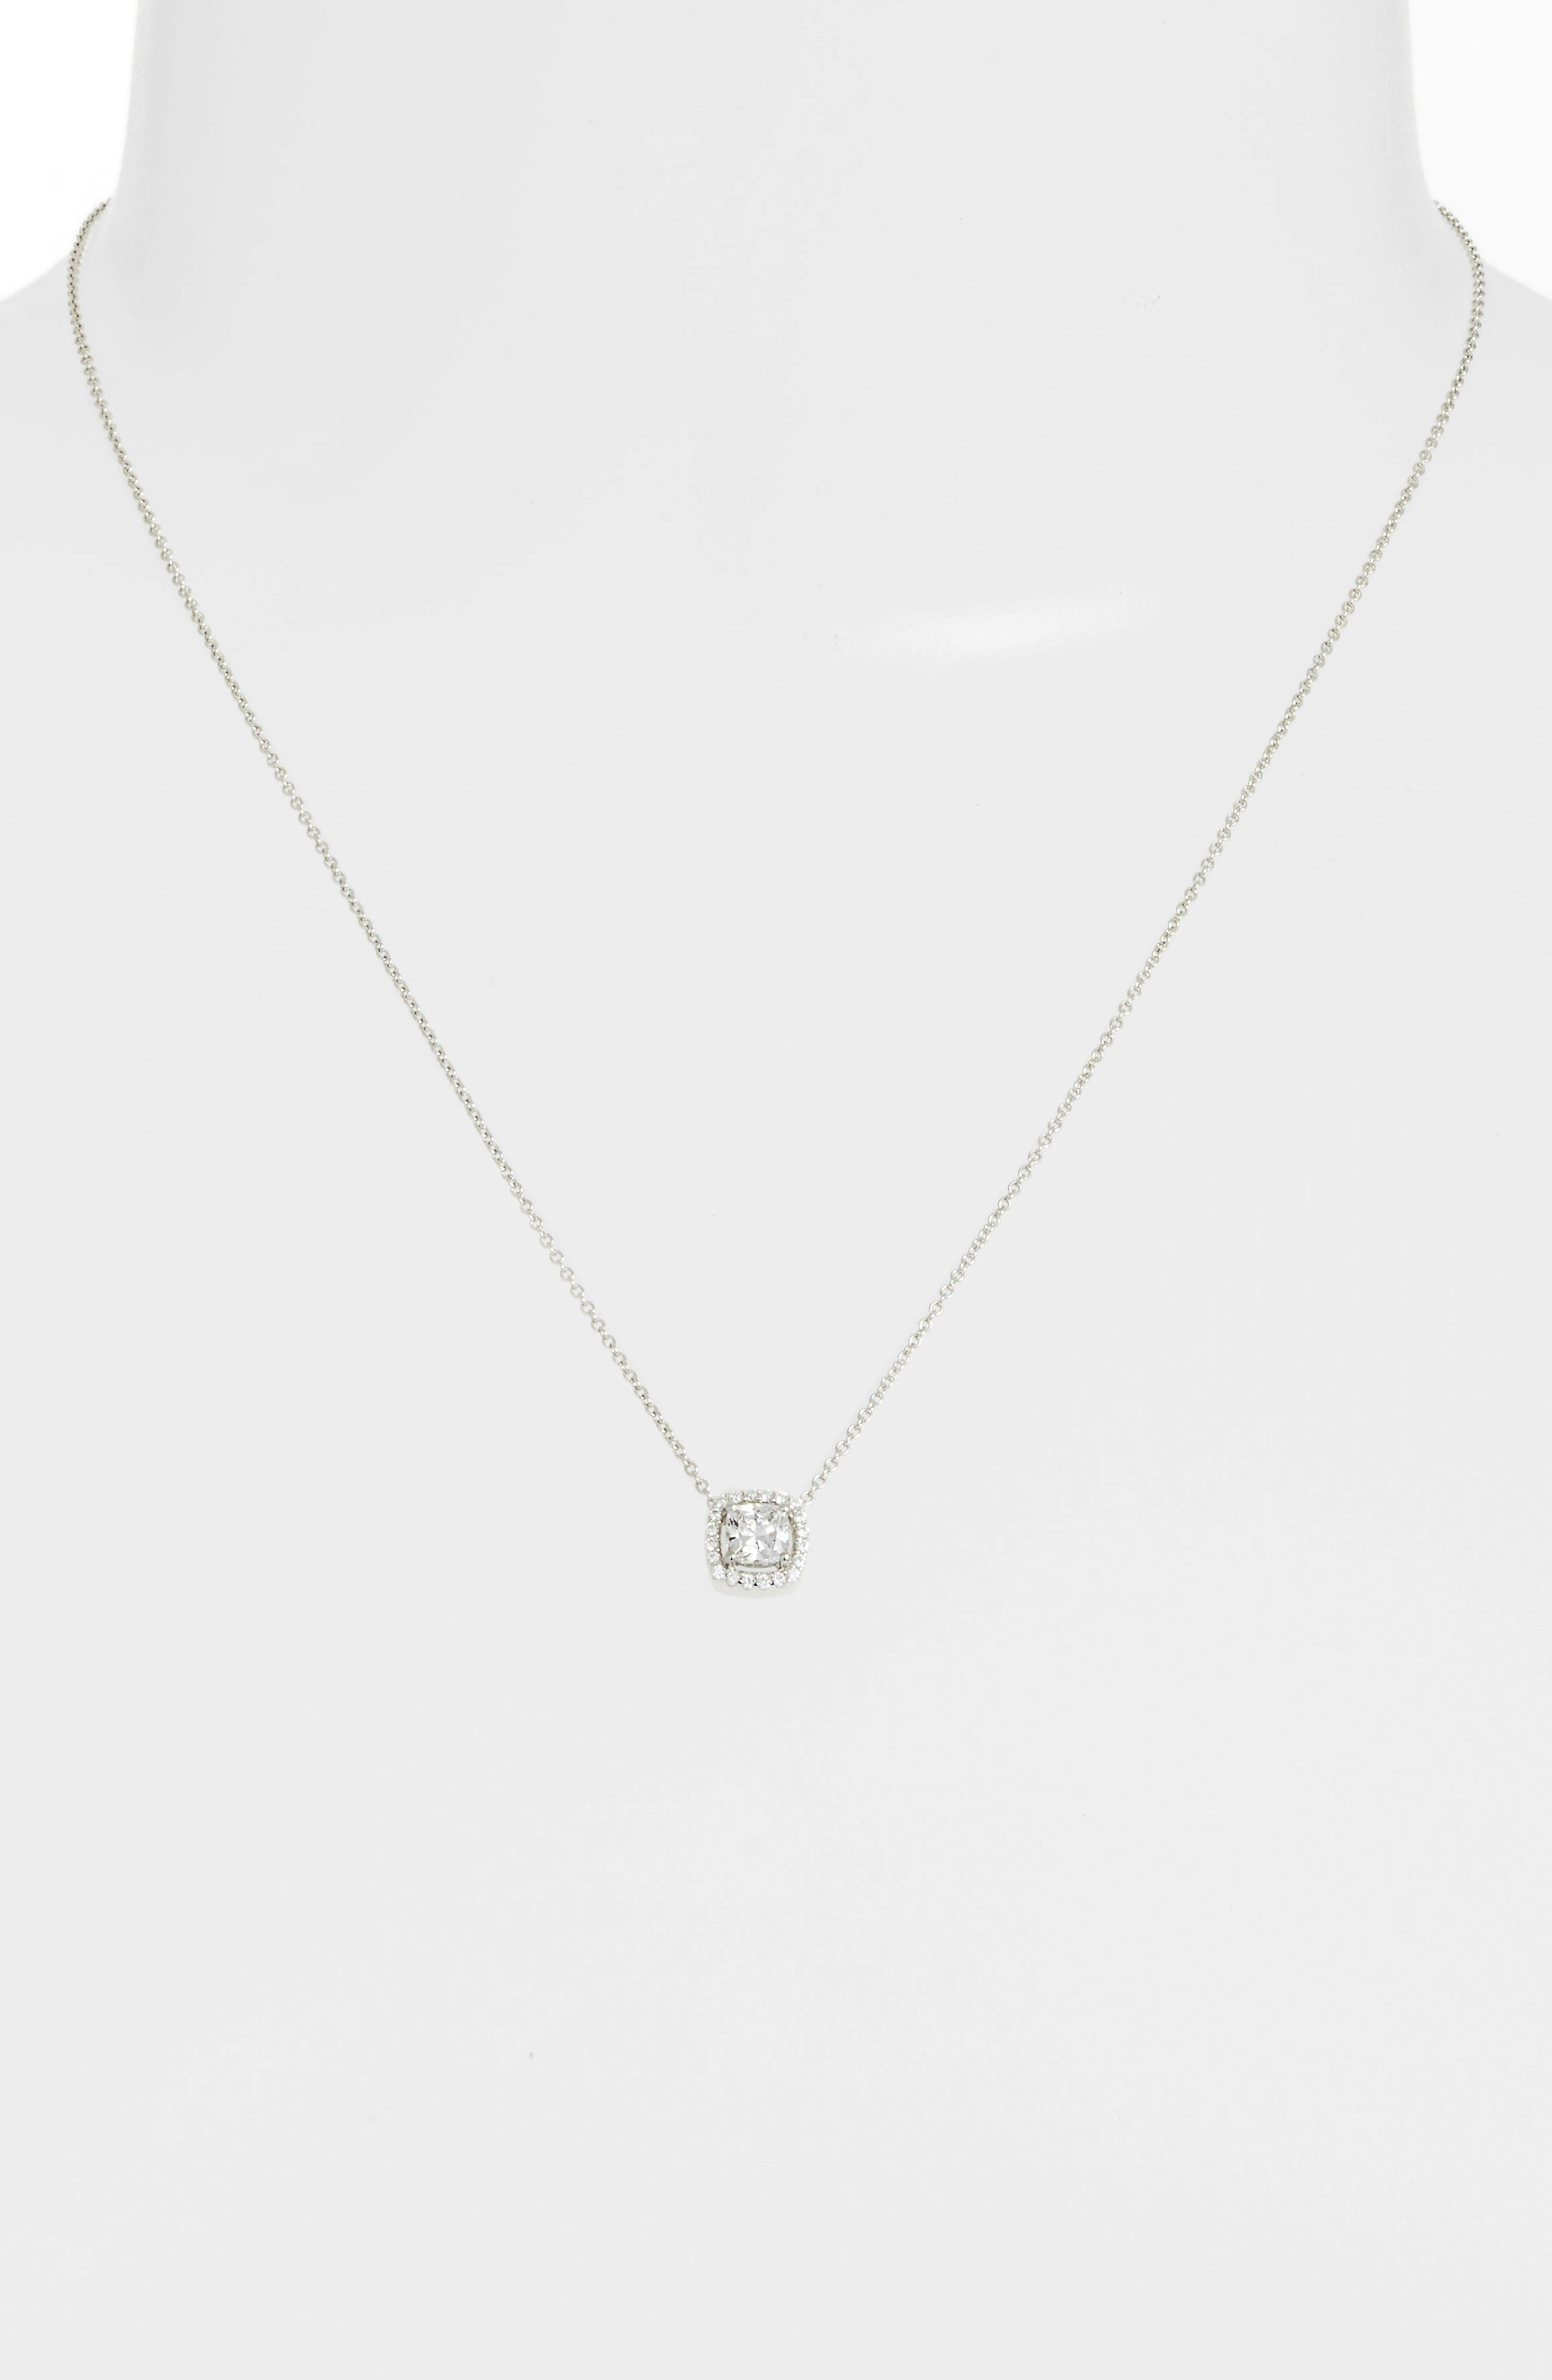 Cushion Cut Halo Necklace,                             Alternate thumbnail 2, color,                             Silver/ Clear